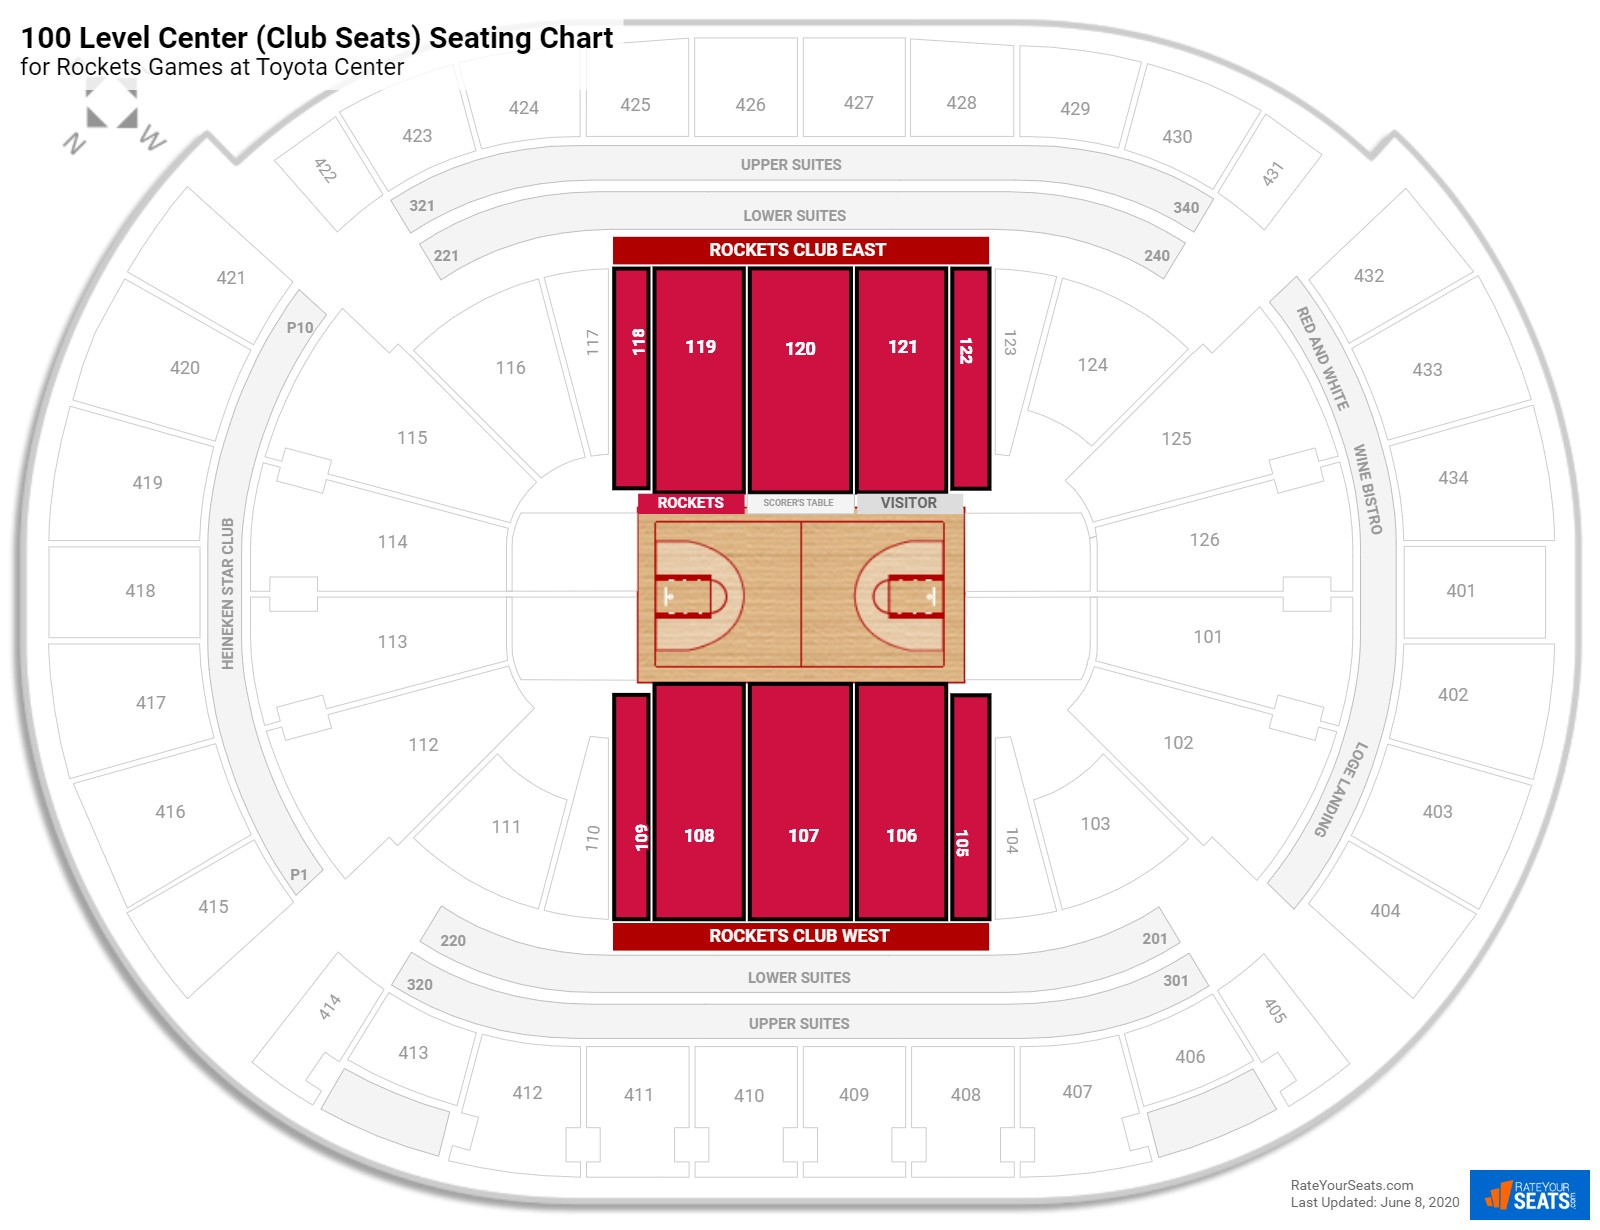 Toyota Center 100 Level Center (Club Seats) seating chart